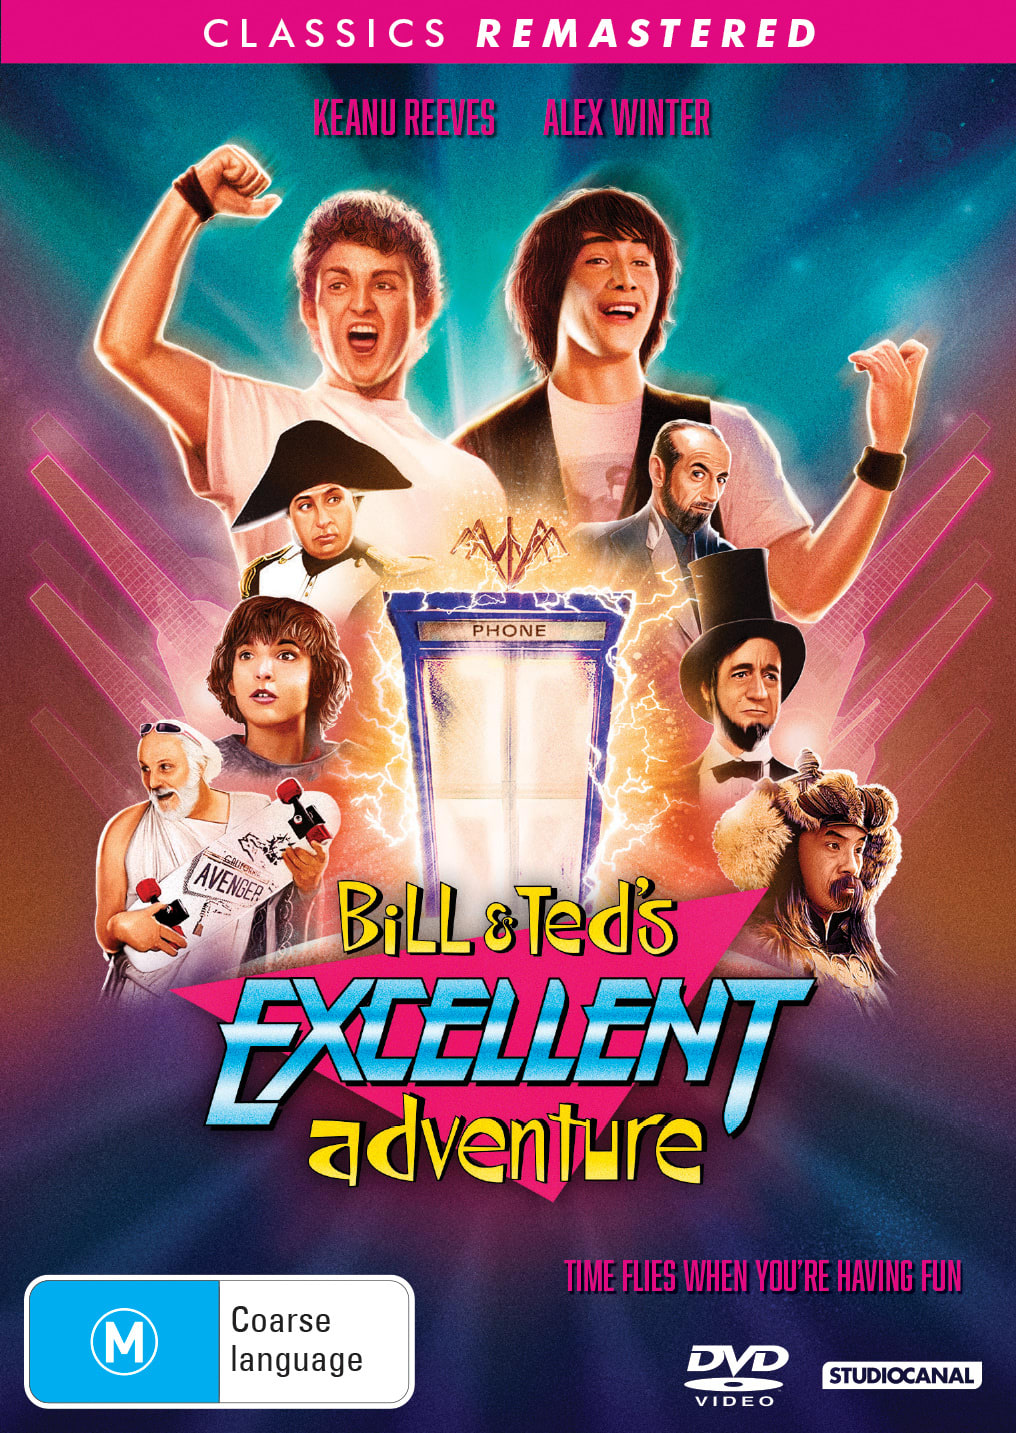 Classics Remastered - Bill & Ted's Excellent Adventure [DVD]